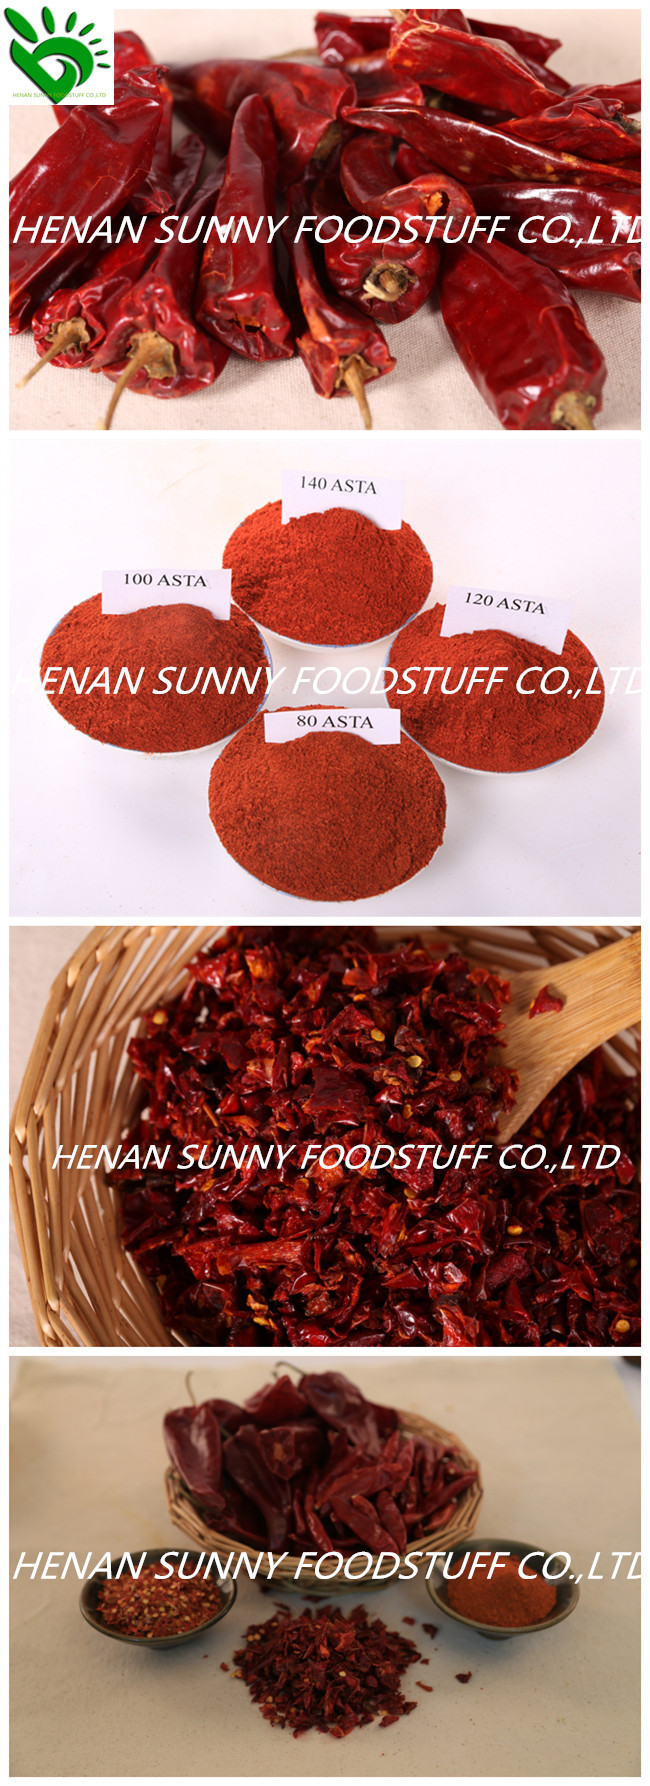 Factory Supply Certificated Small Red Chili